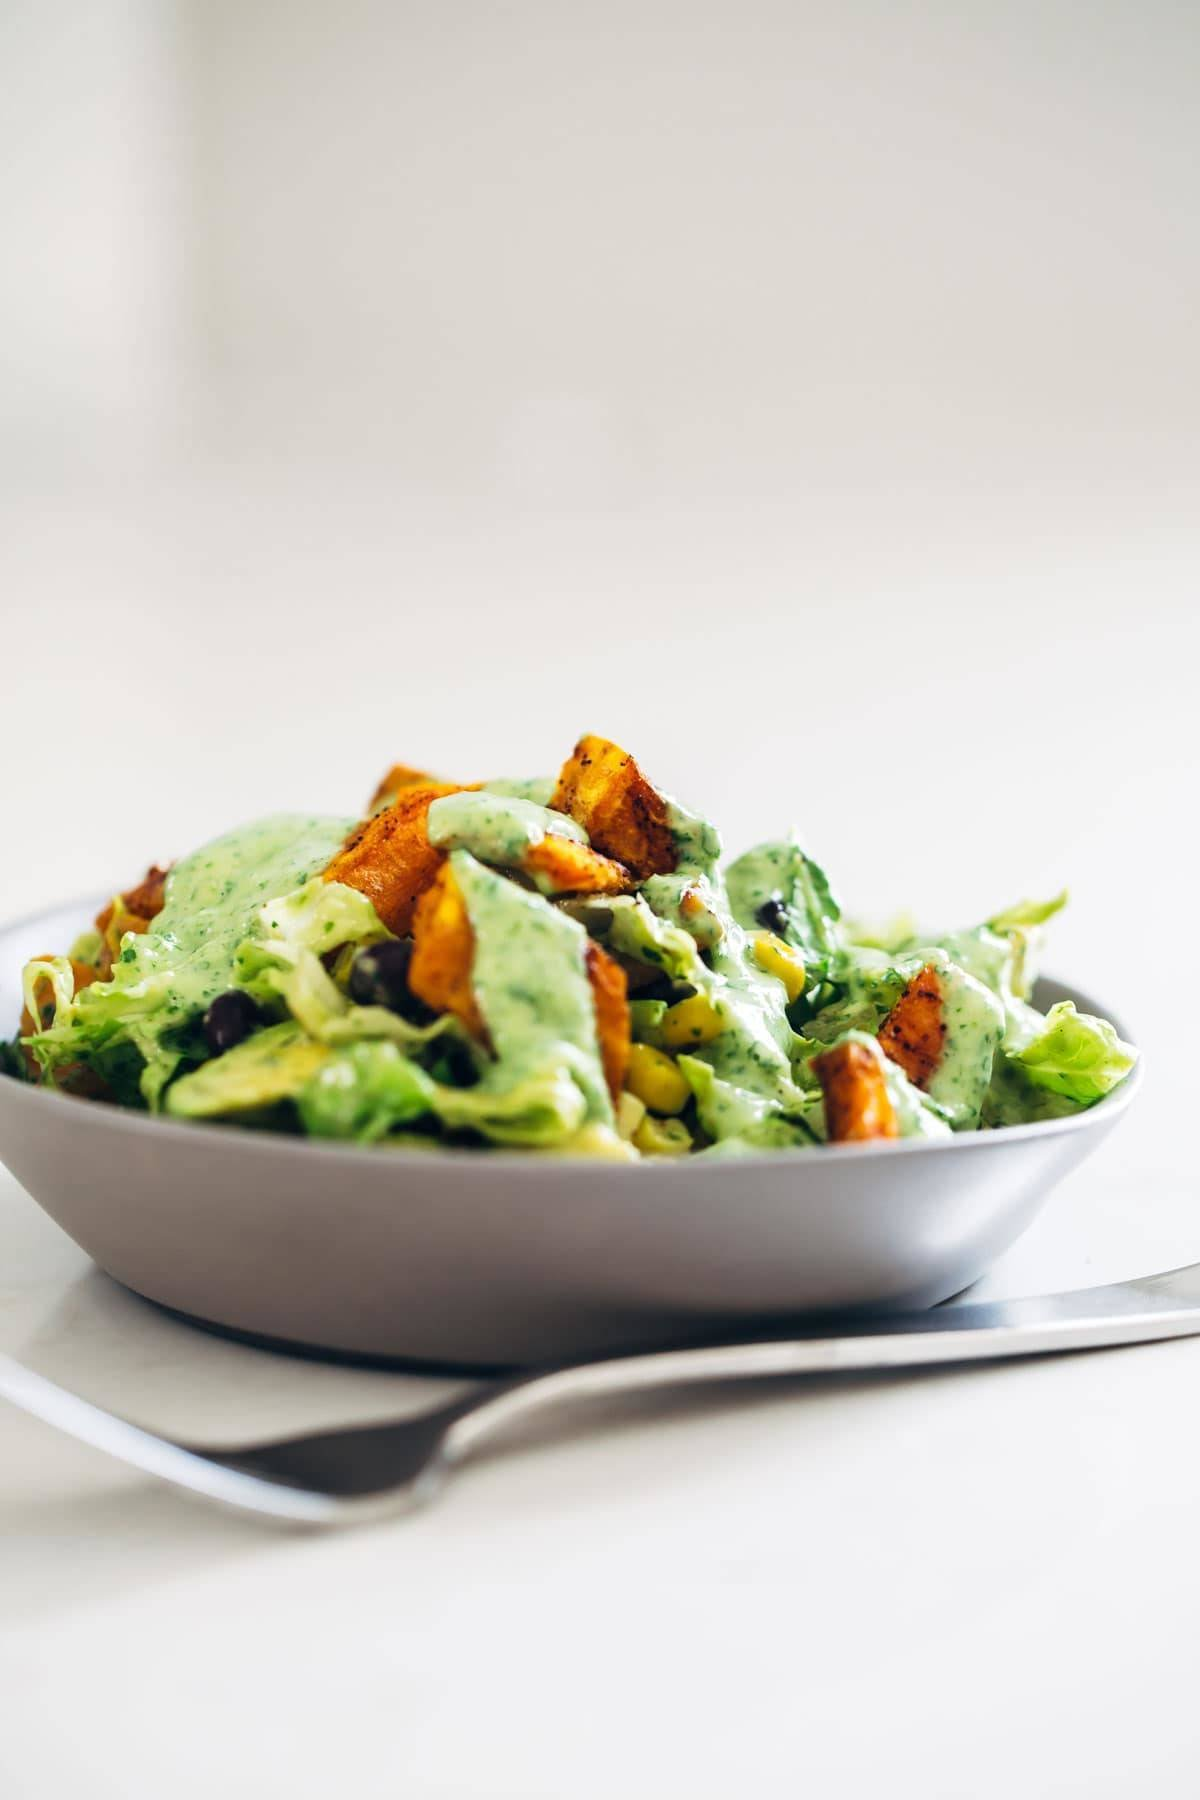 This healthy Spicy Southwestern Salad recipe has roasted sweet potatoes, black beans, corn, lettuce, and creamy avocado dressing! | pinchofyum.com